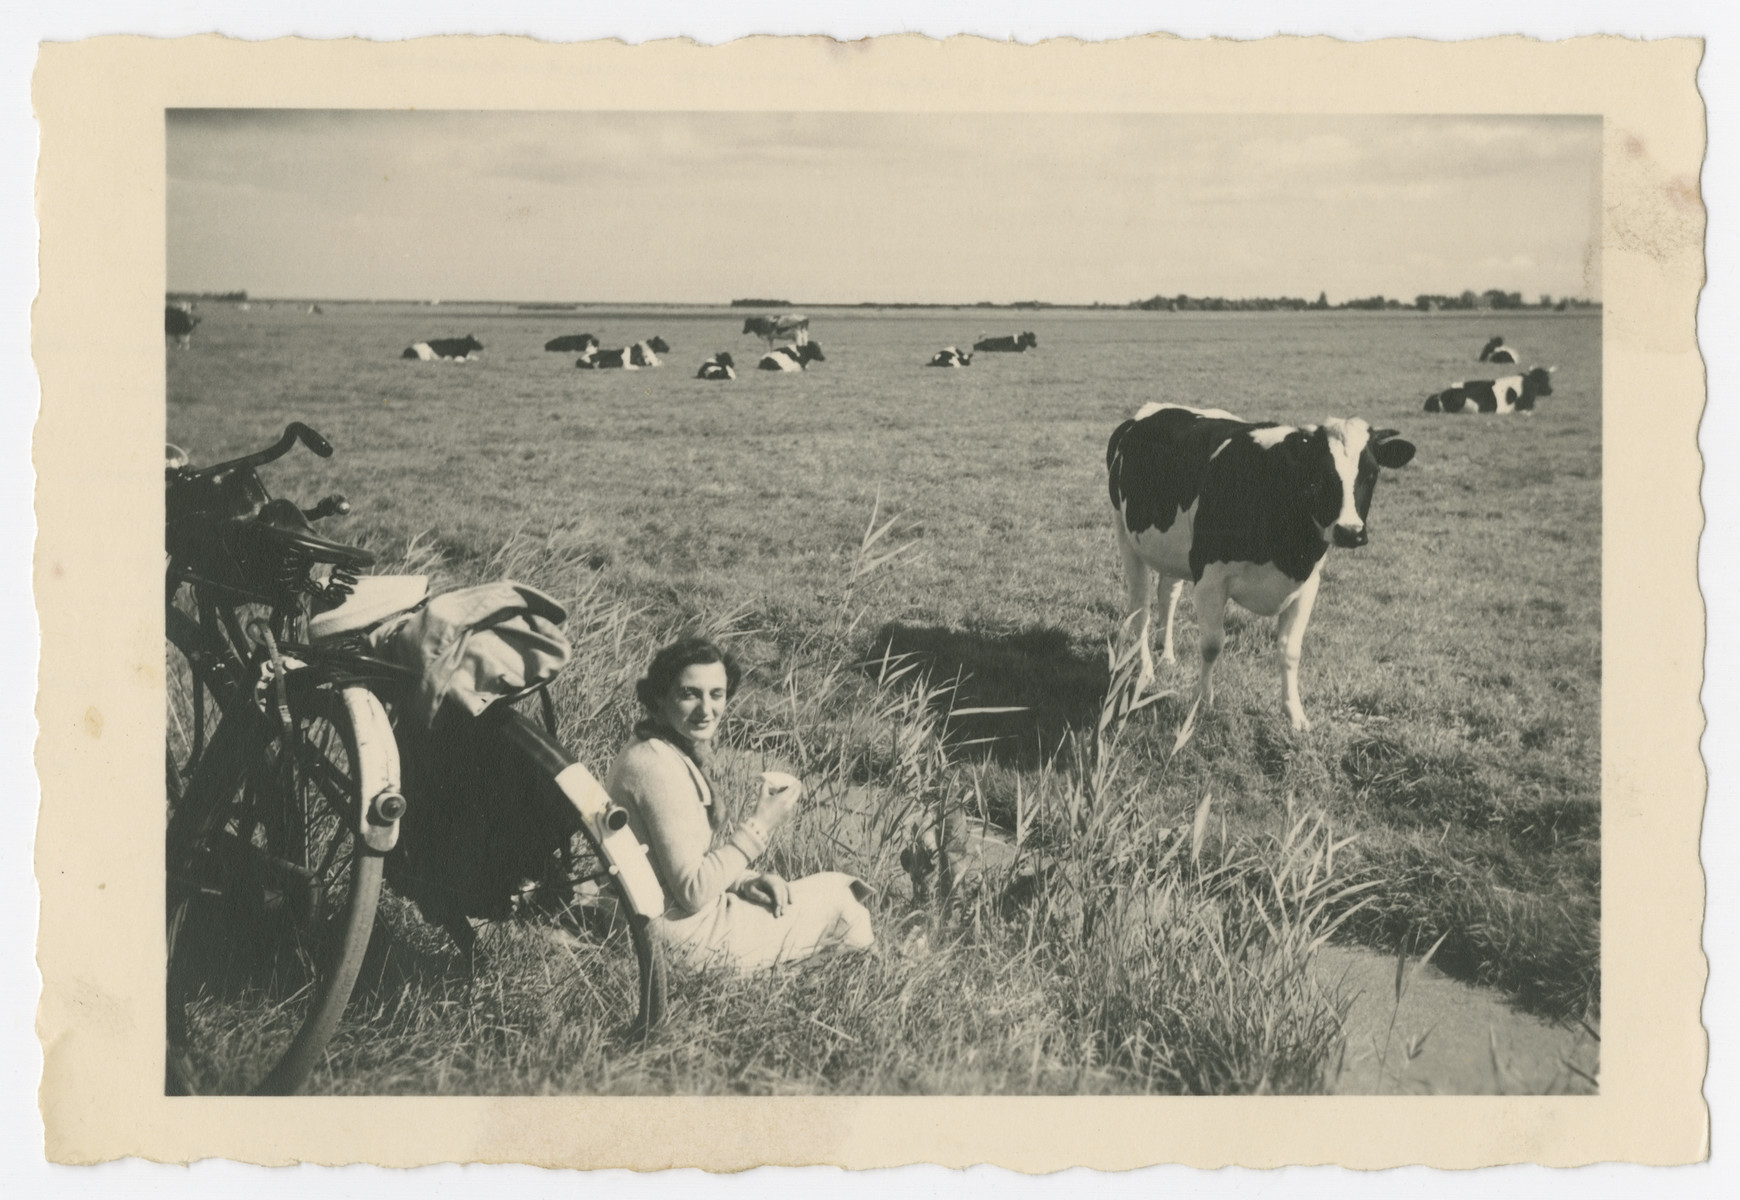 Engelien rests near a field of cattle while on a bike trip.